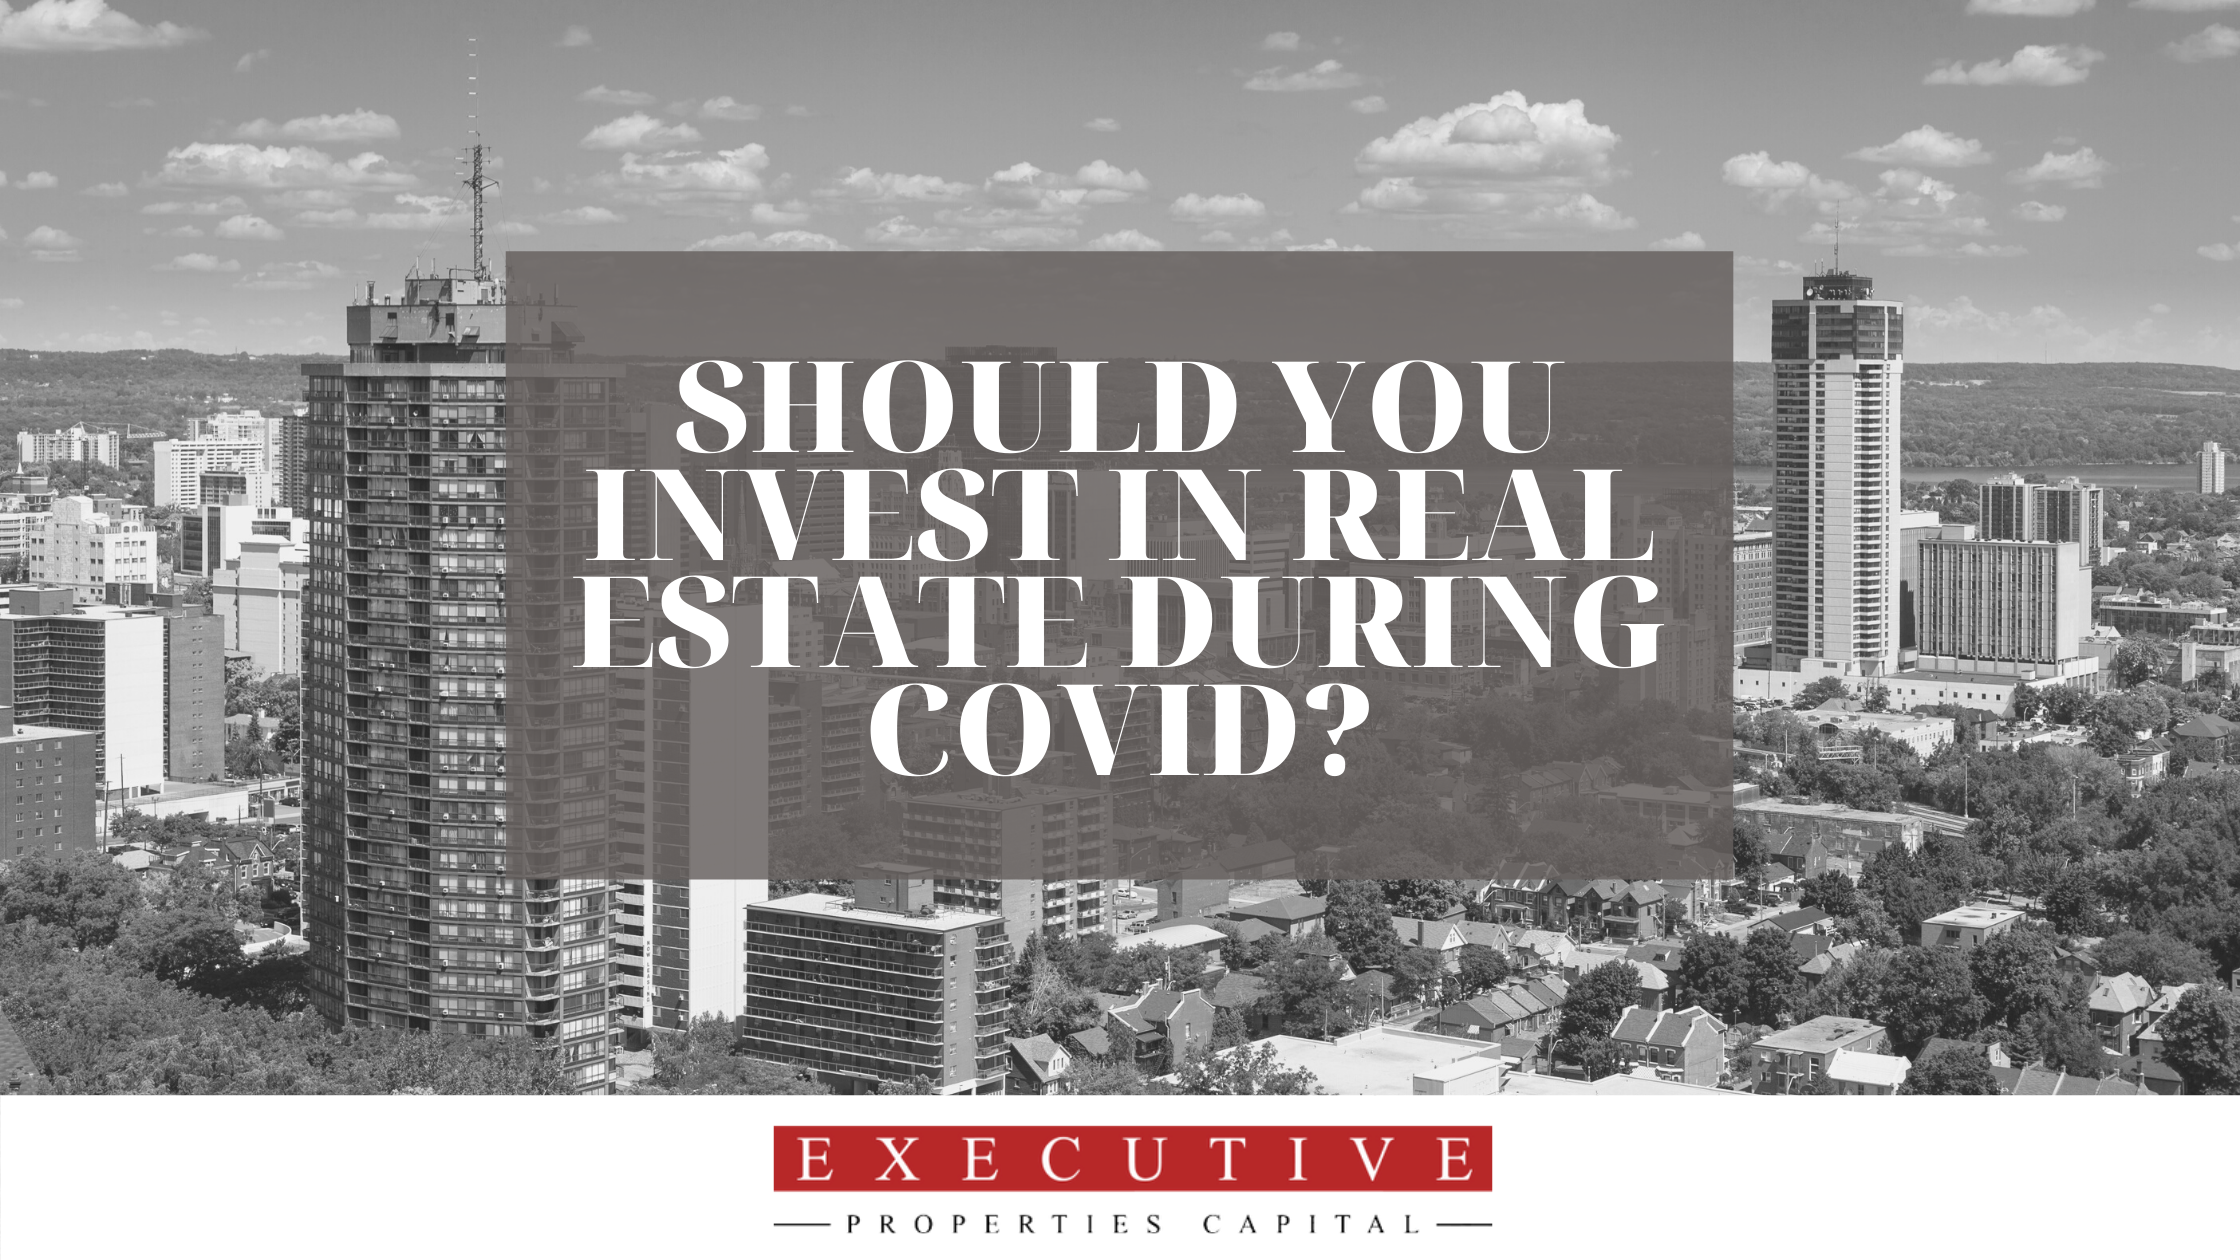 Should you invest in real estate during COVID?